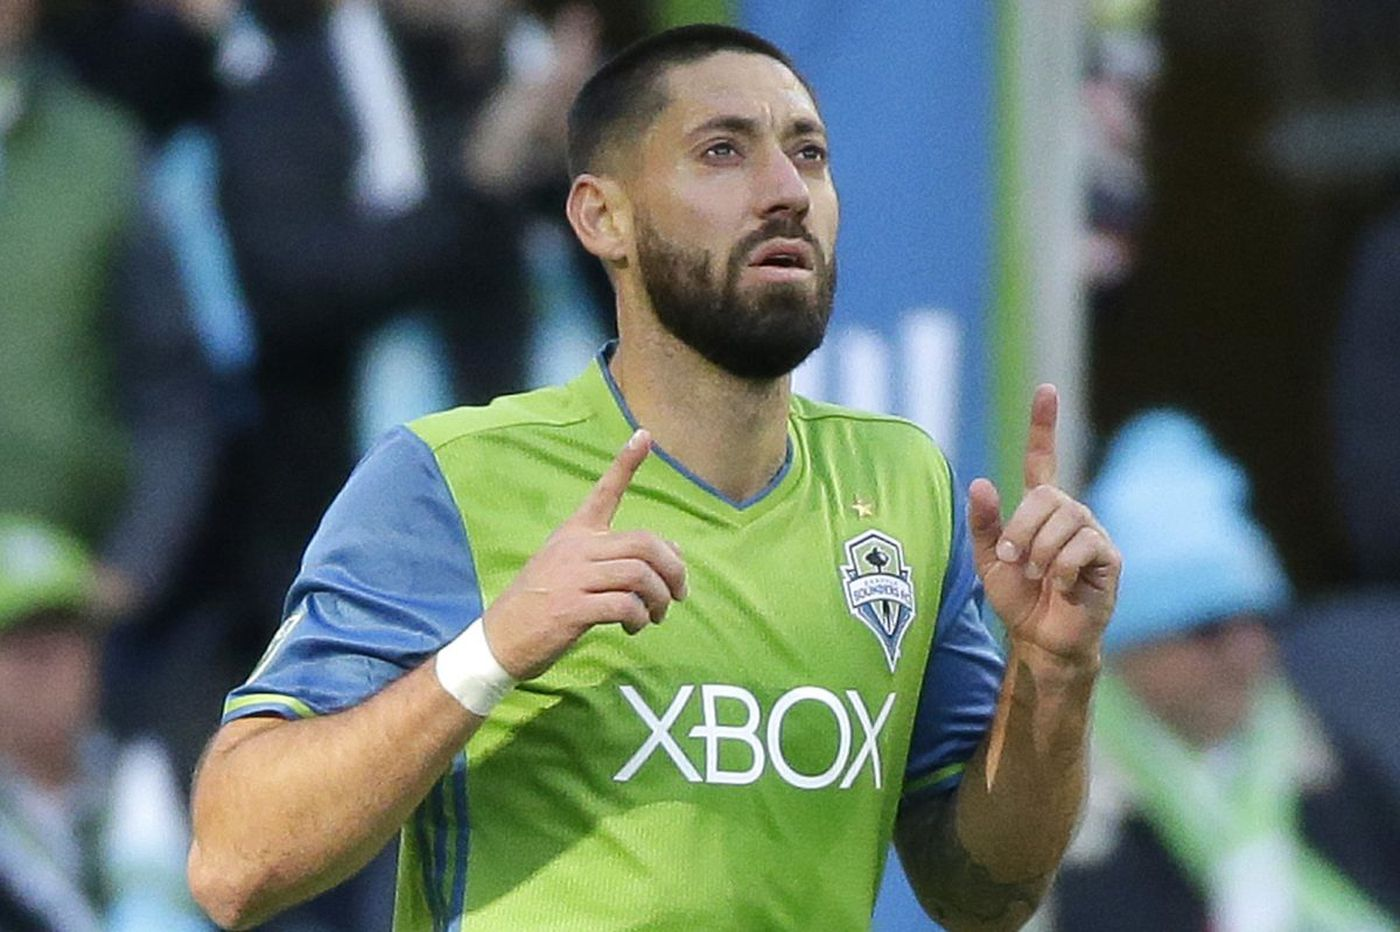 Union get rare visit from Clint Dempsey, Seattle Sounders and U.S. national team star